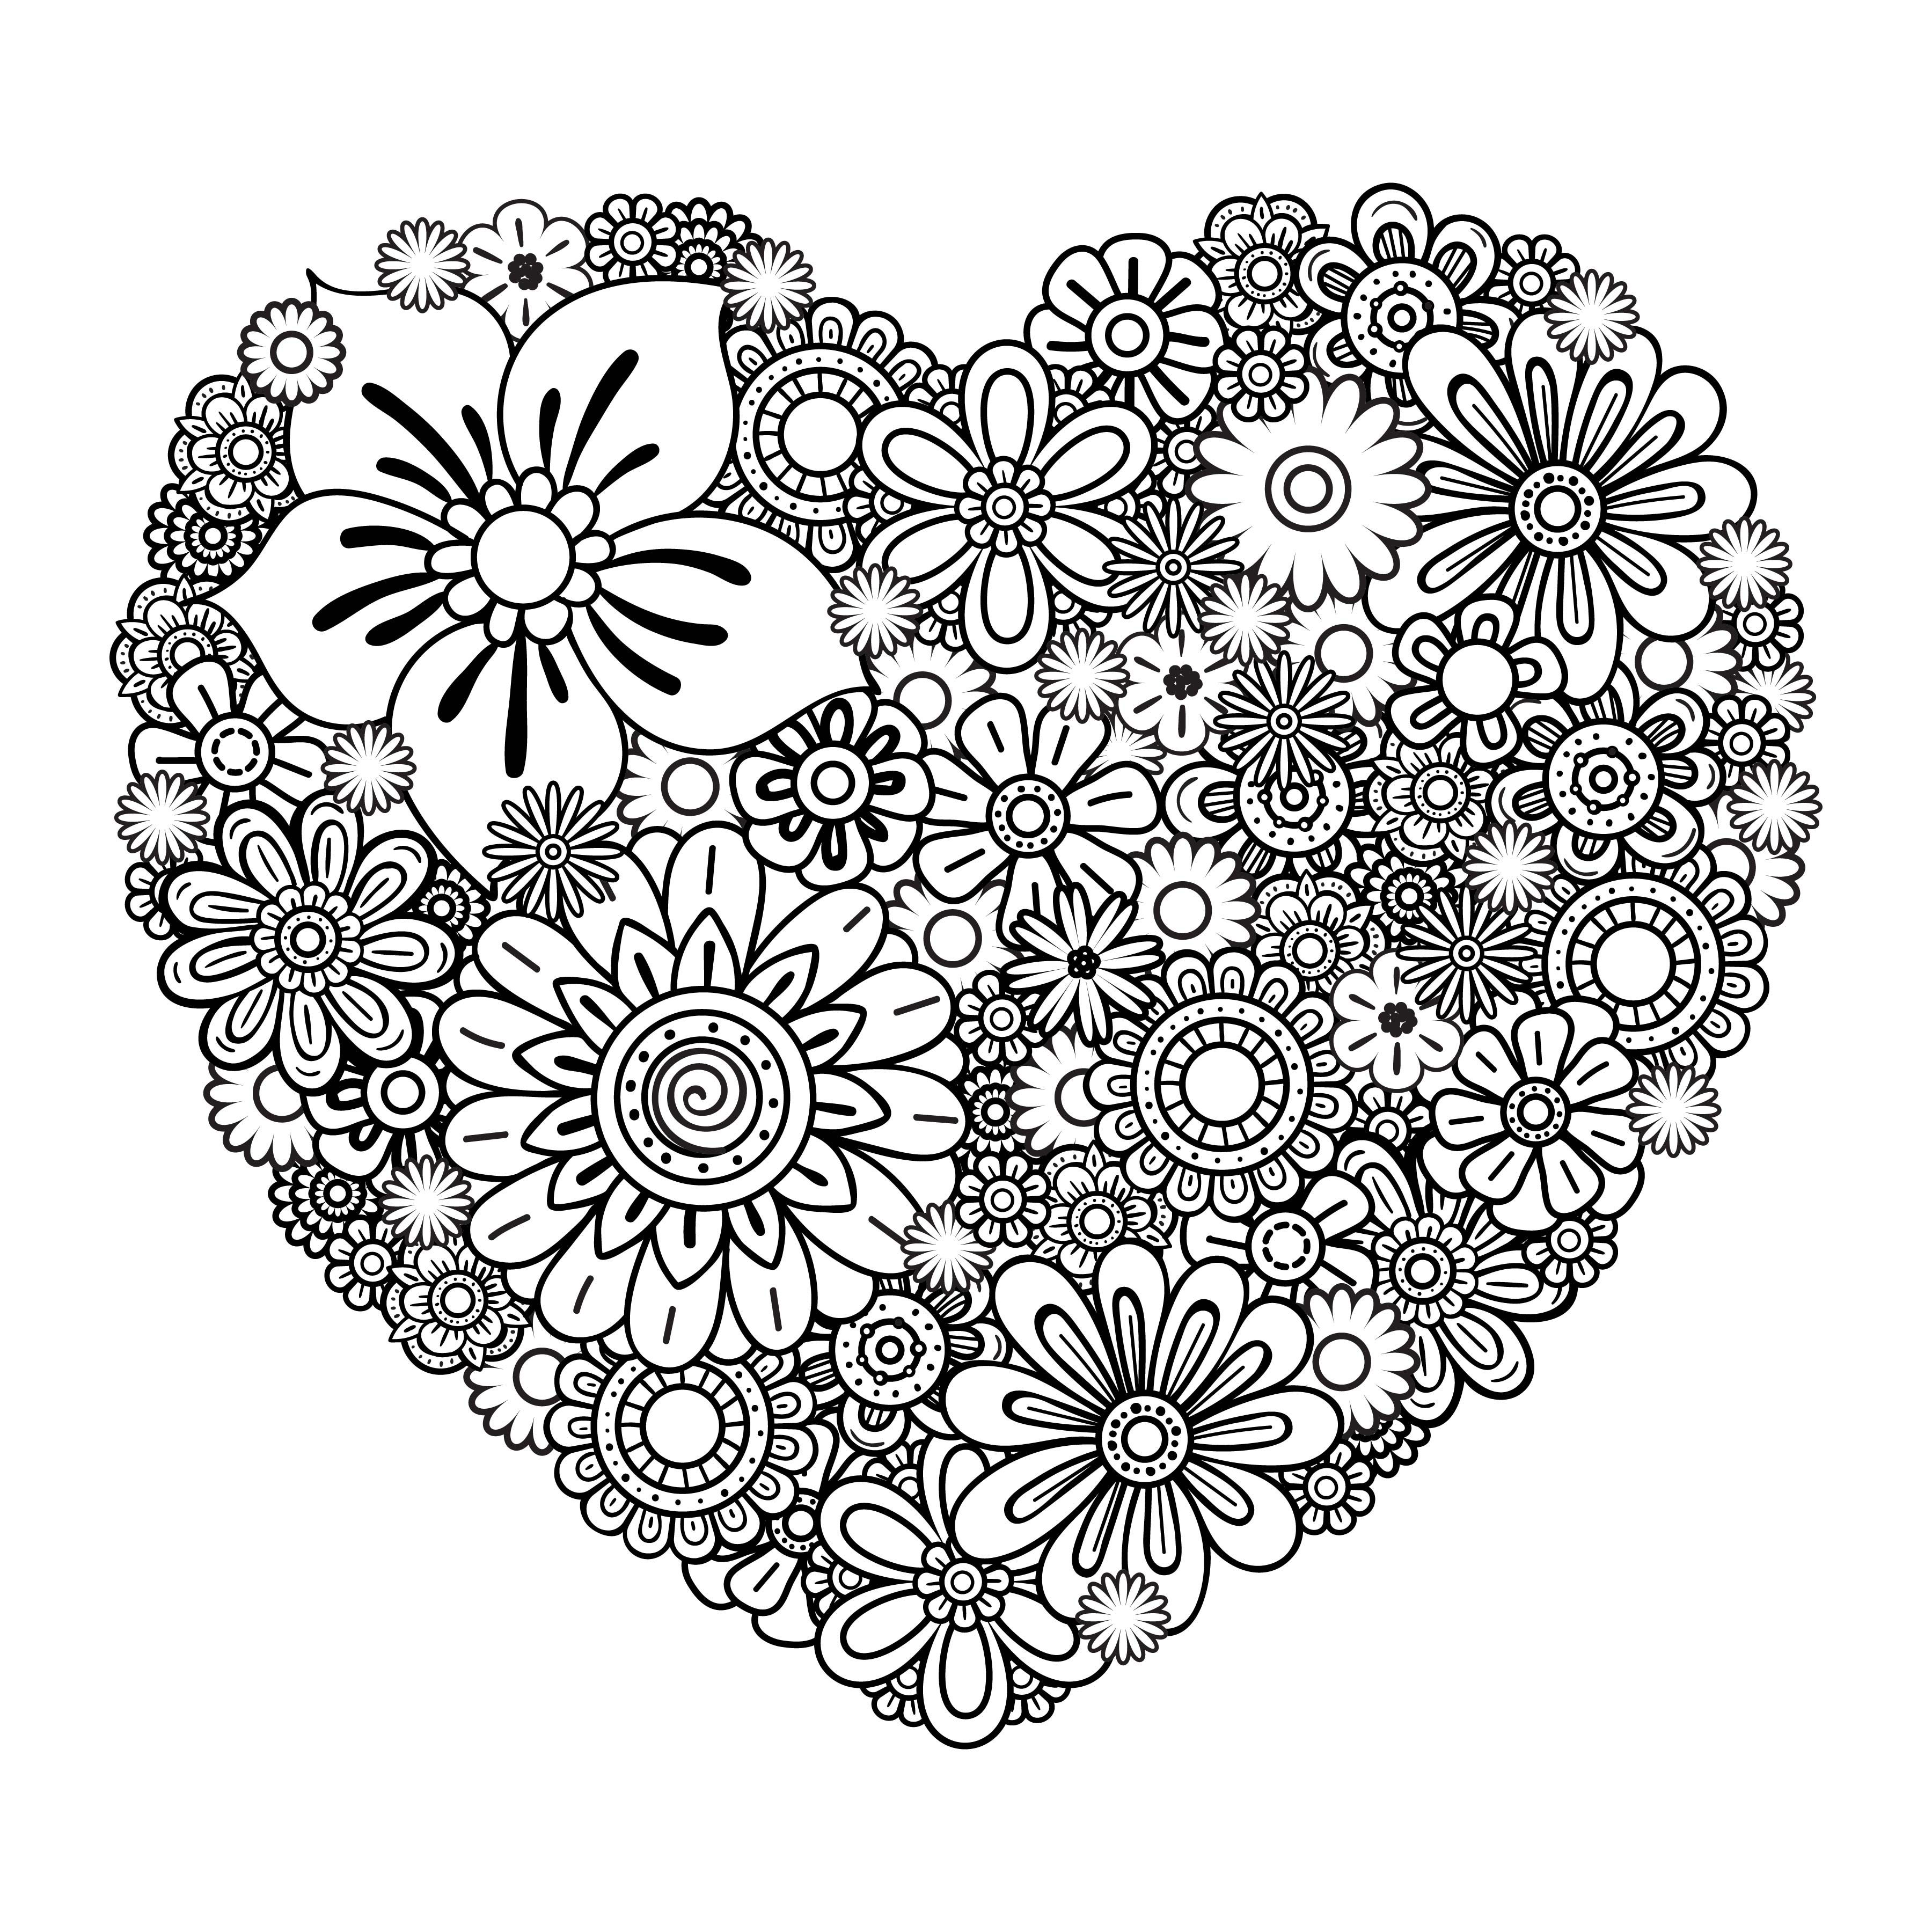 Floral heart svg, instant download files, personal and